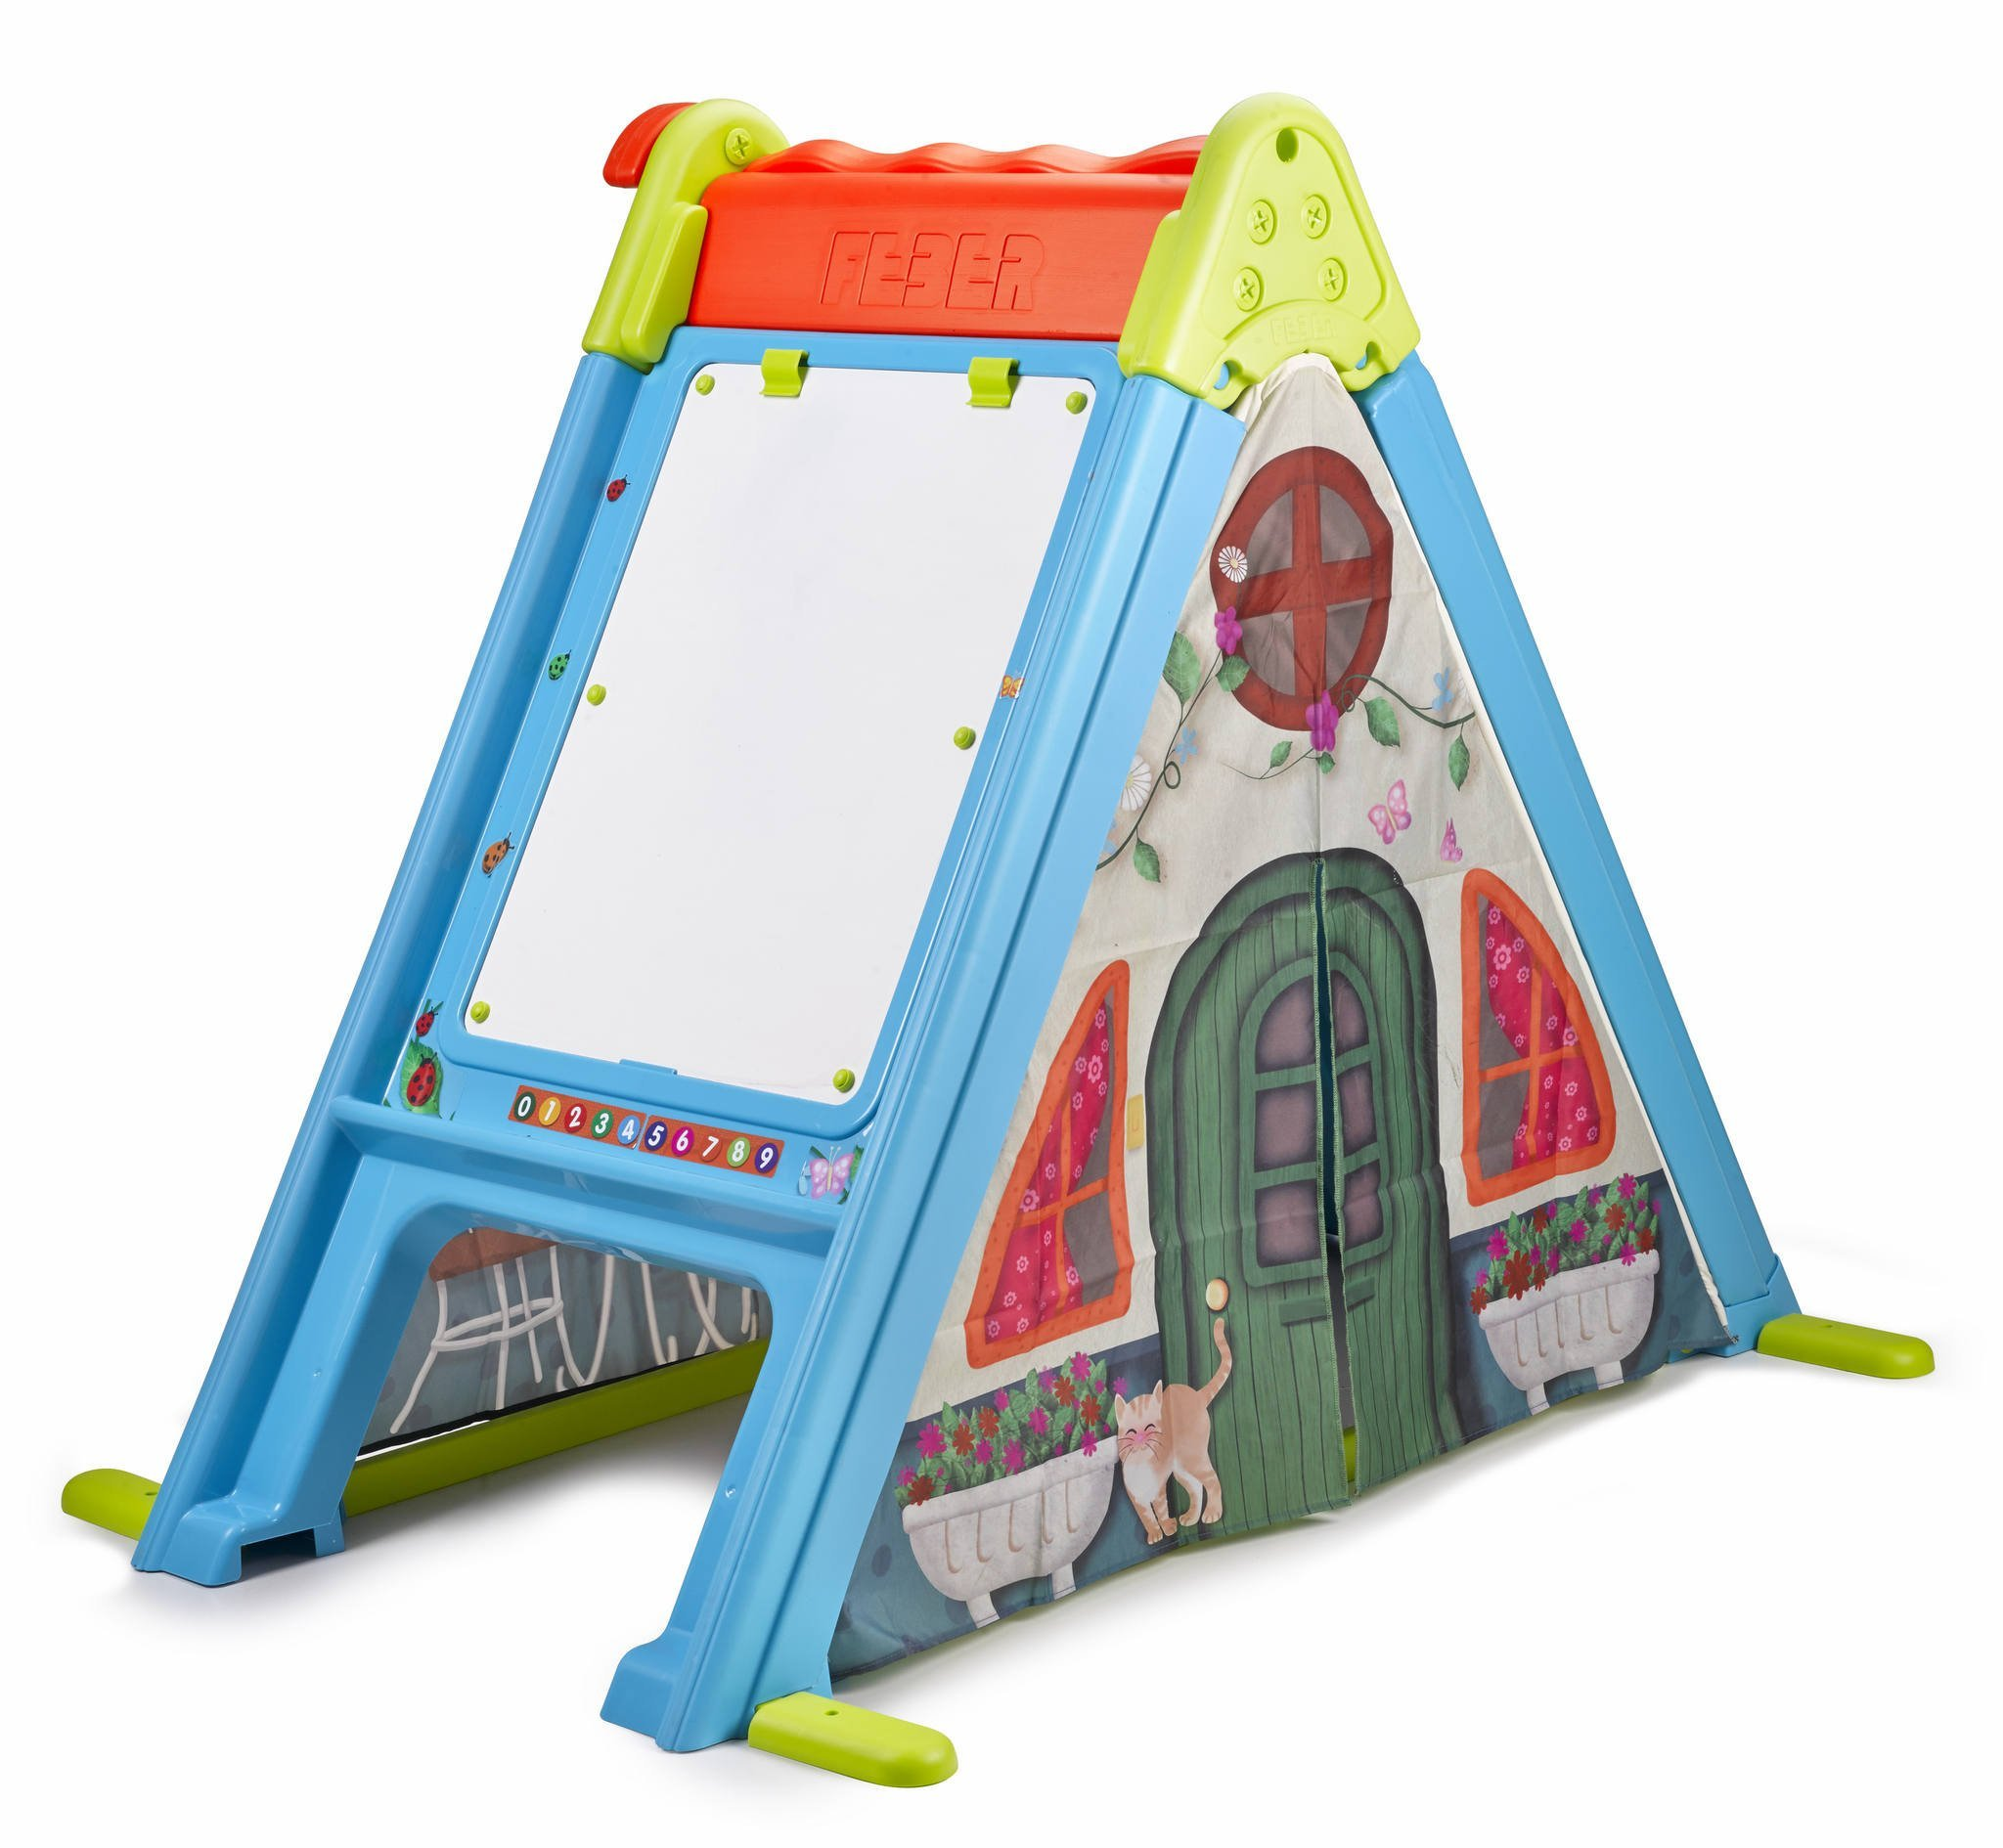 Feber 800011400 Play and Fold Activity House 3 in 1 – Playset - Easy to Store – Indoor and Outdoor, Multicolor by Feber (Image #1)